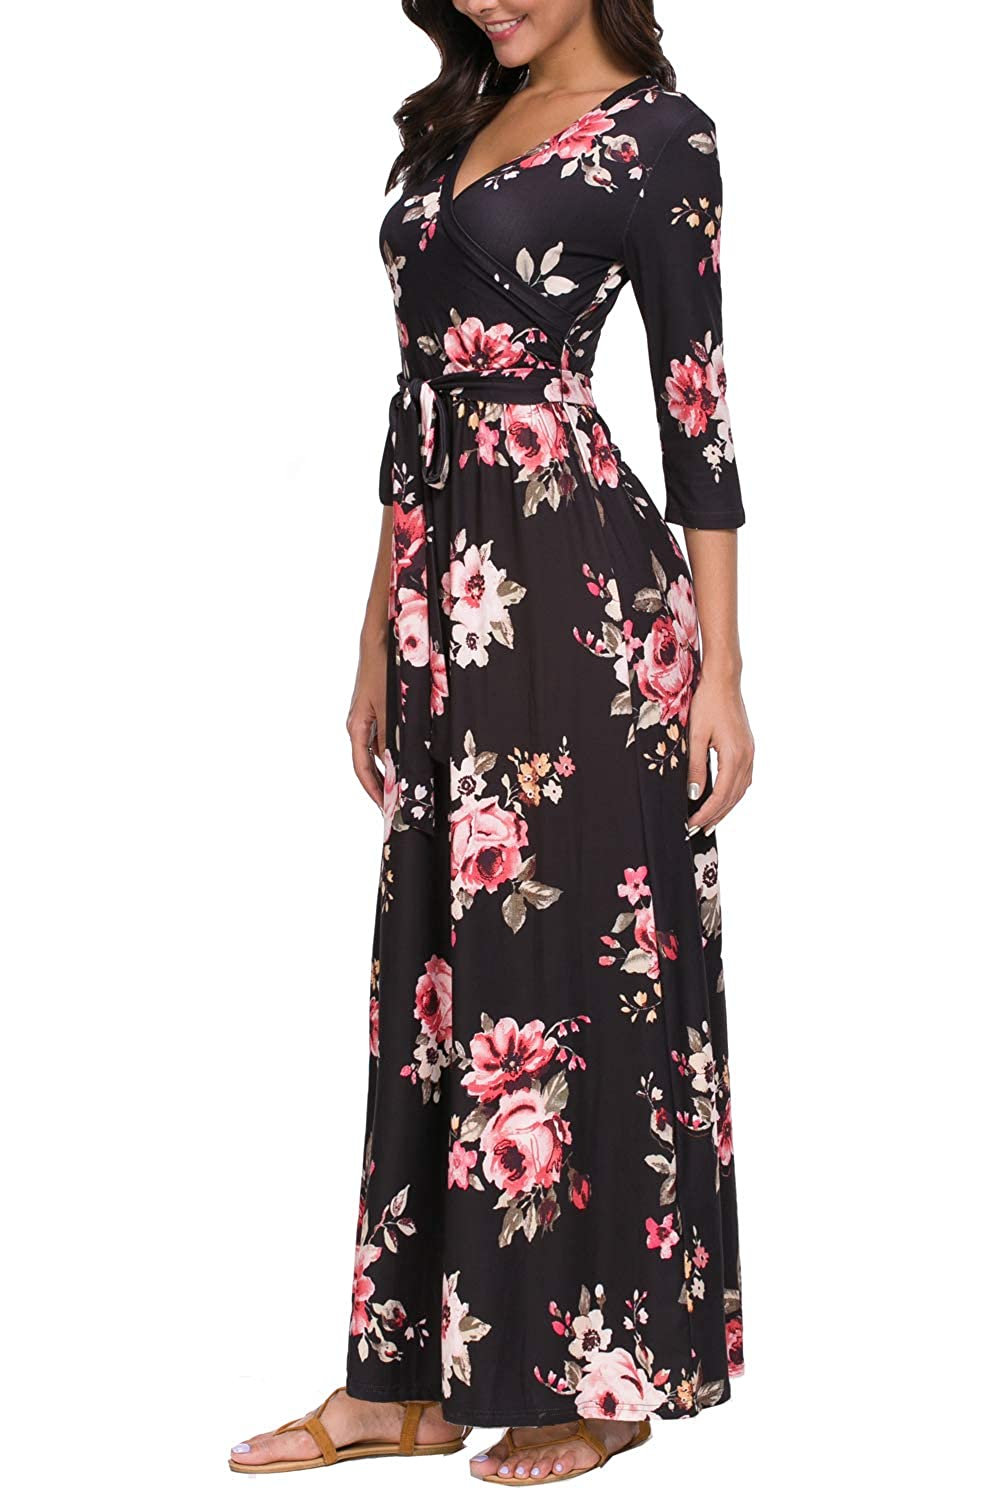 49663d6fe0a6 Zattcas Womens 3/4 Sleeve Floral Print Faux Wrap Long Maxi Dress with Belt  at Amazon Women's Clothing store: